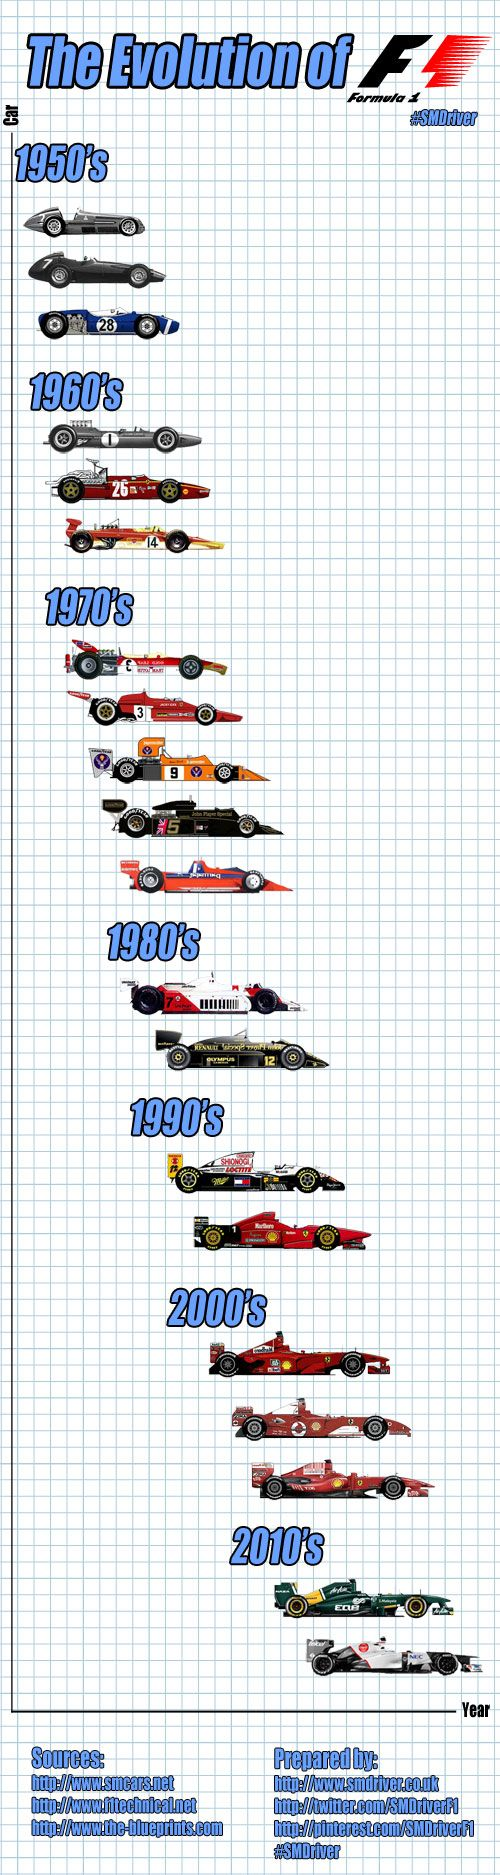 The Evolution of Formula One Cars - 1950 to 2012